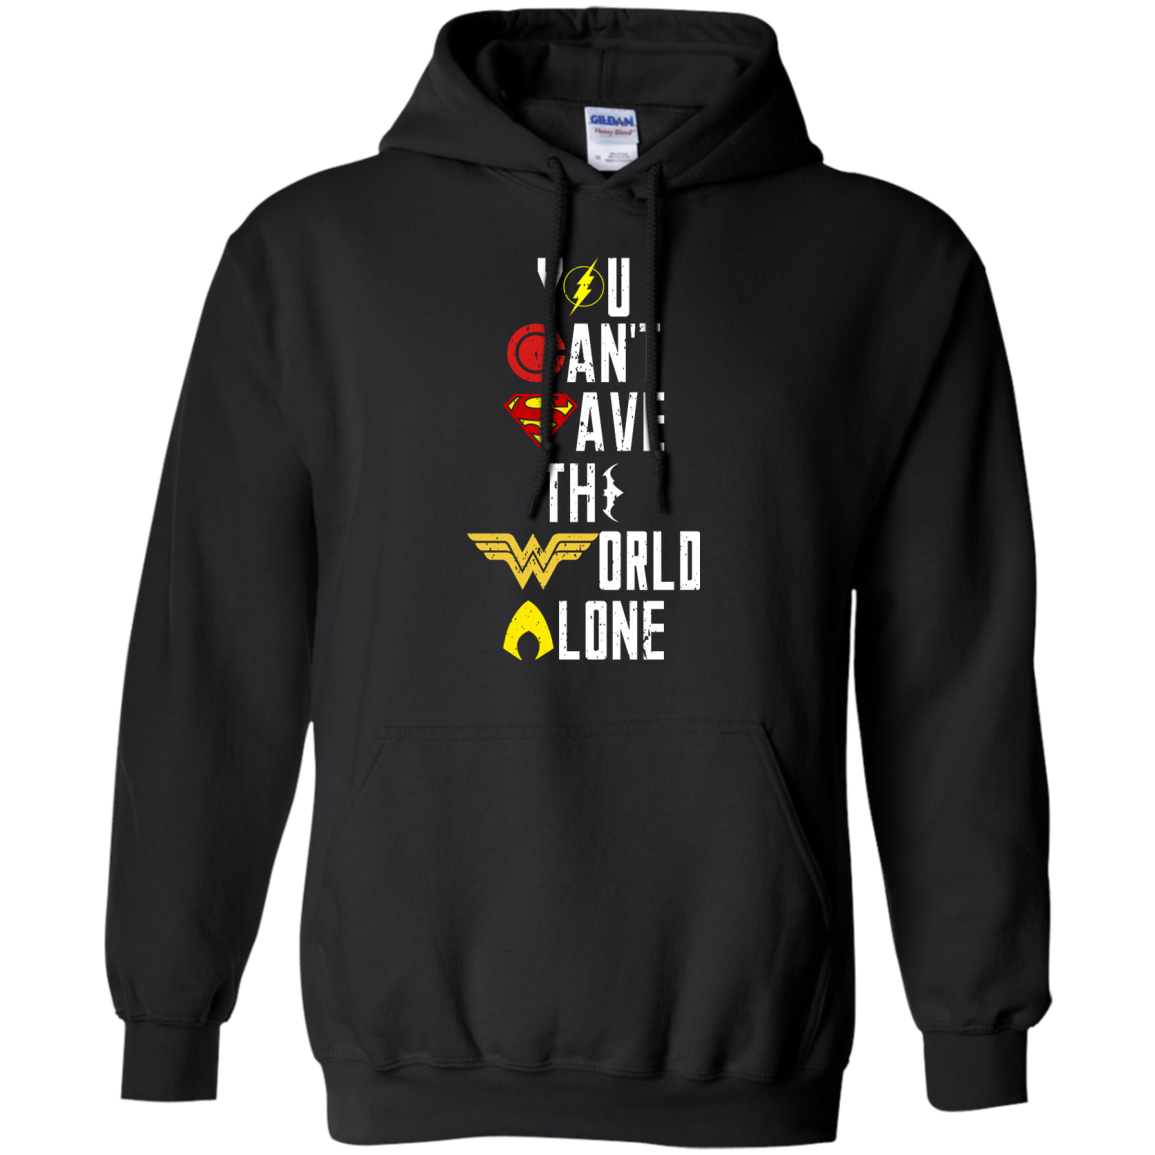 image 26px Justice League: You Can Save The World A Lone T Shirts, Hoodies, Sweaters